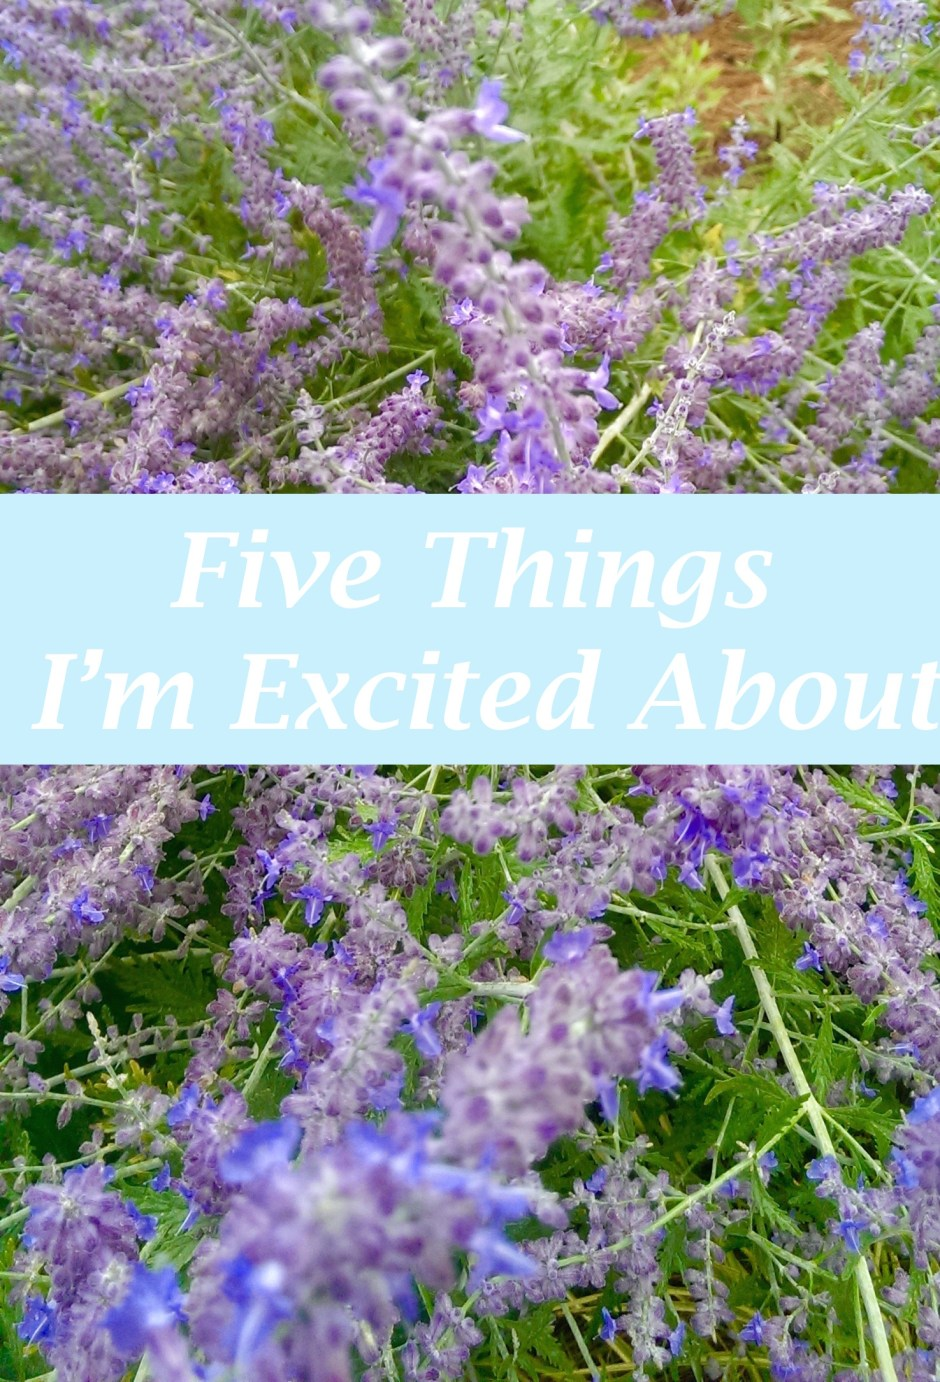 Five things to get excited about with flowers